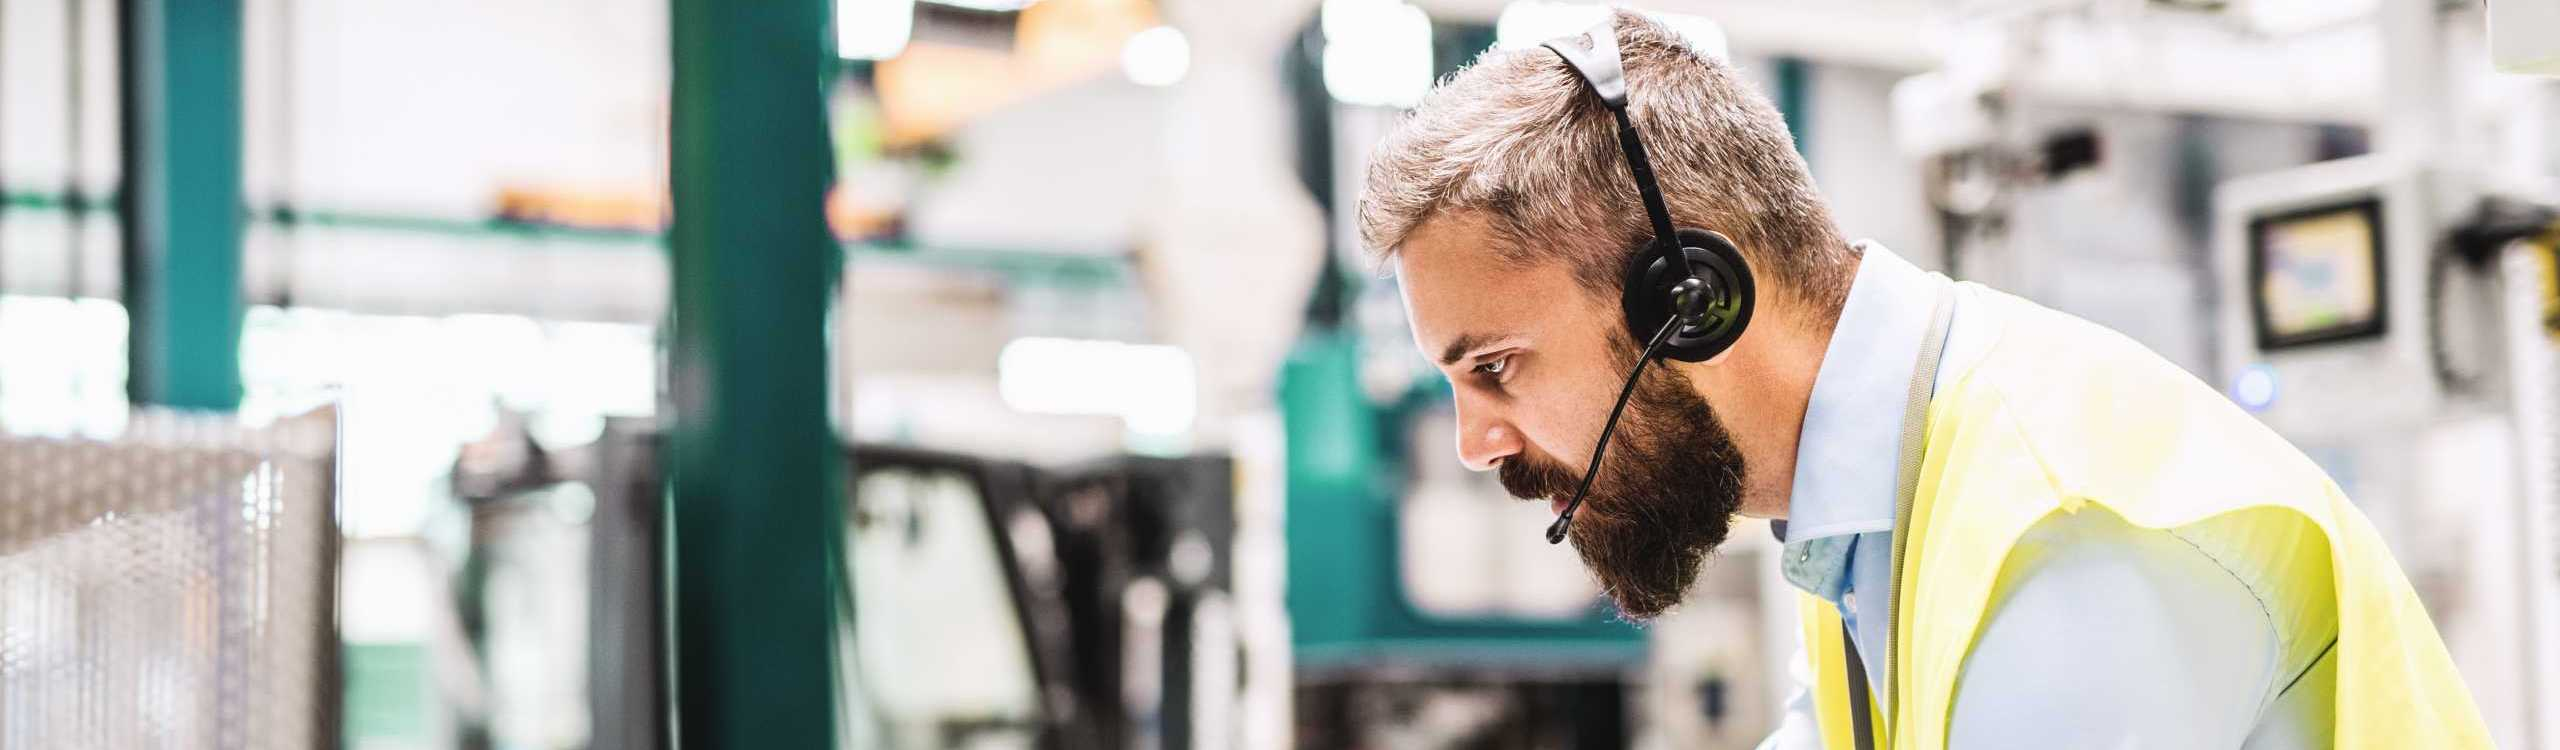 Engineer with a headset is working in a large industrial hall